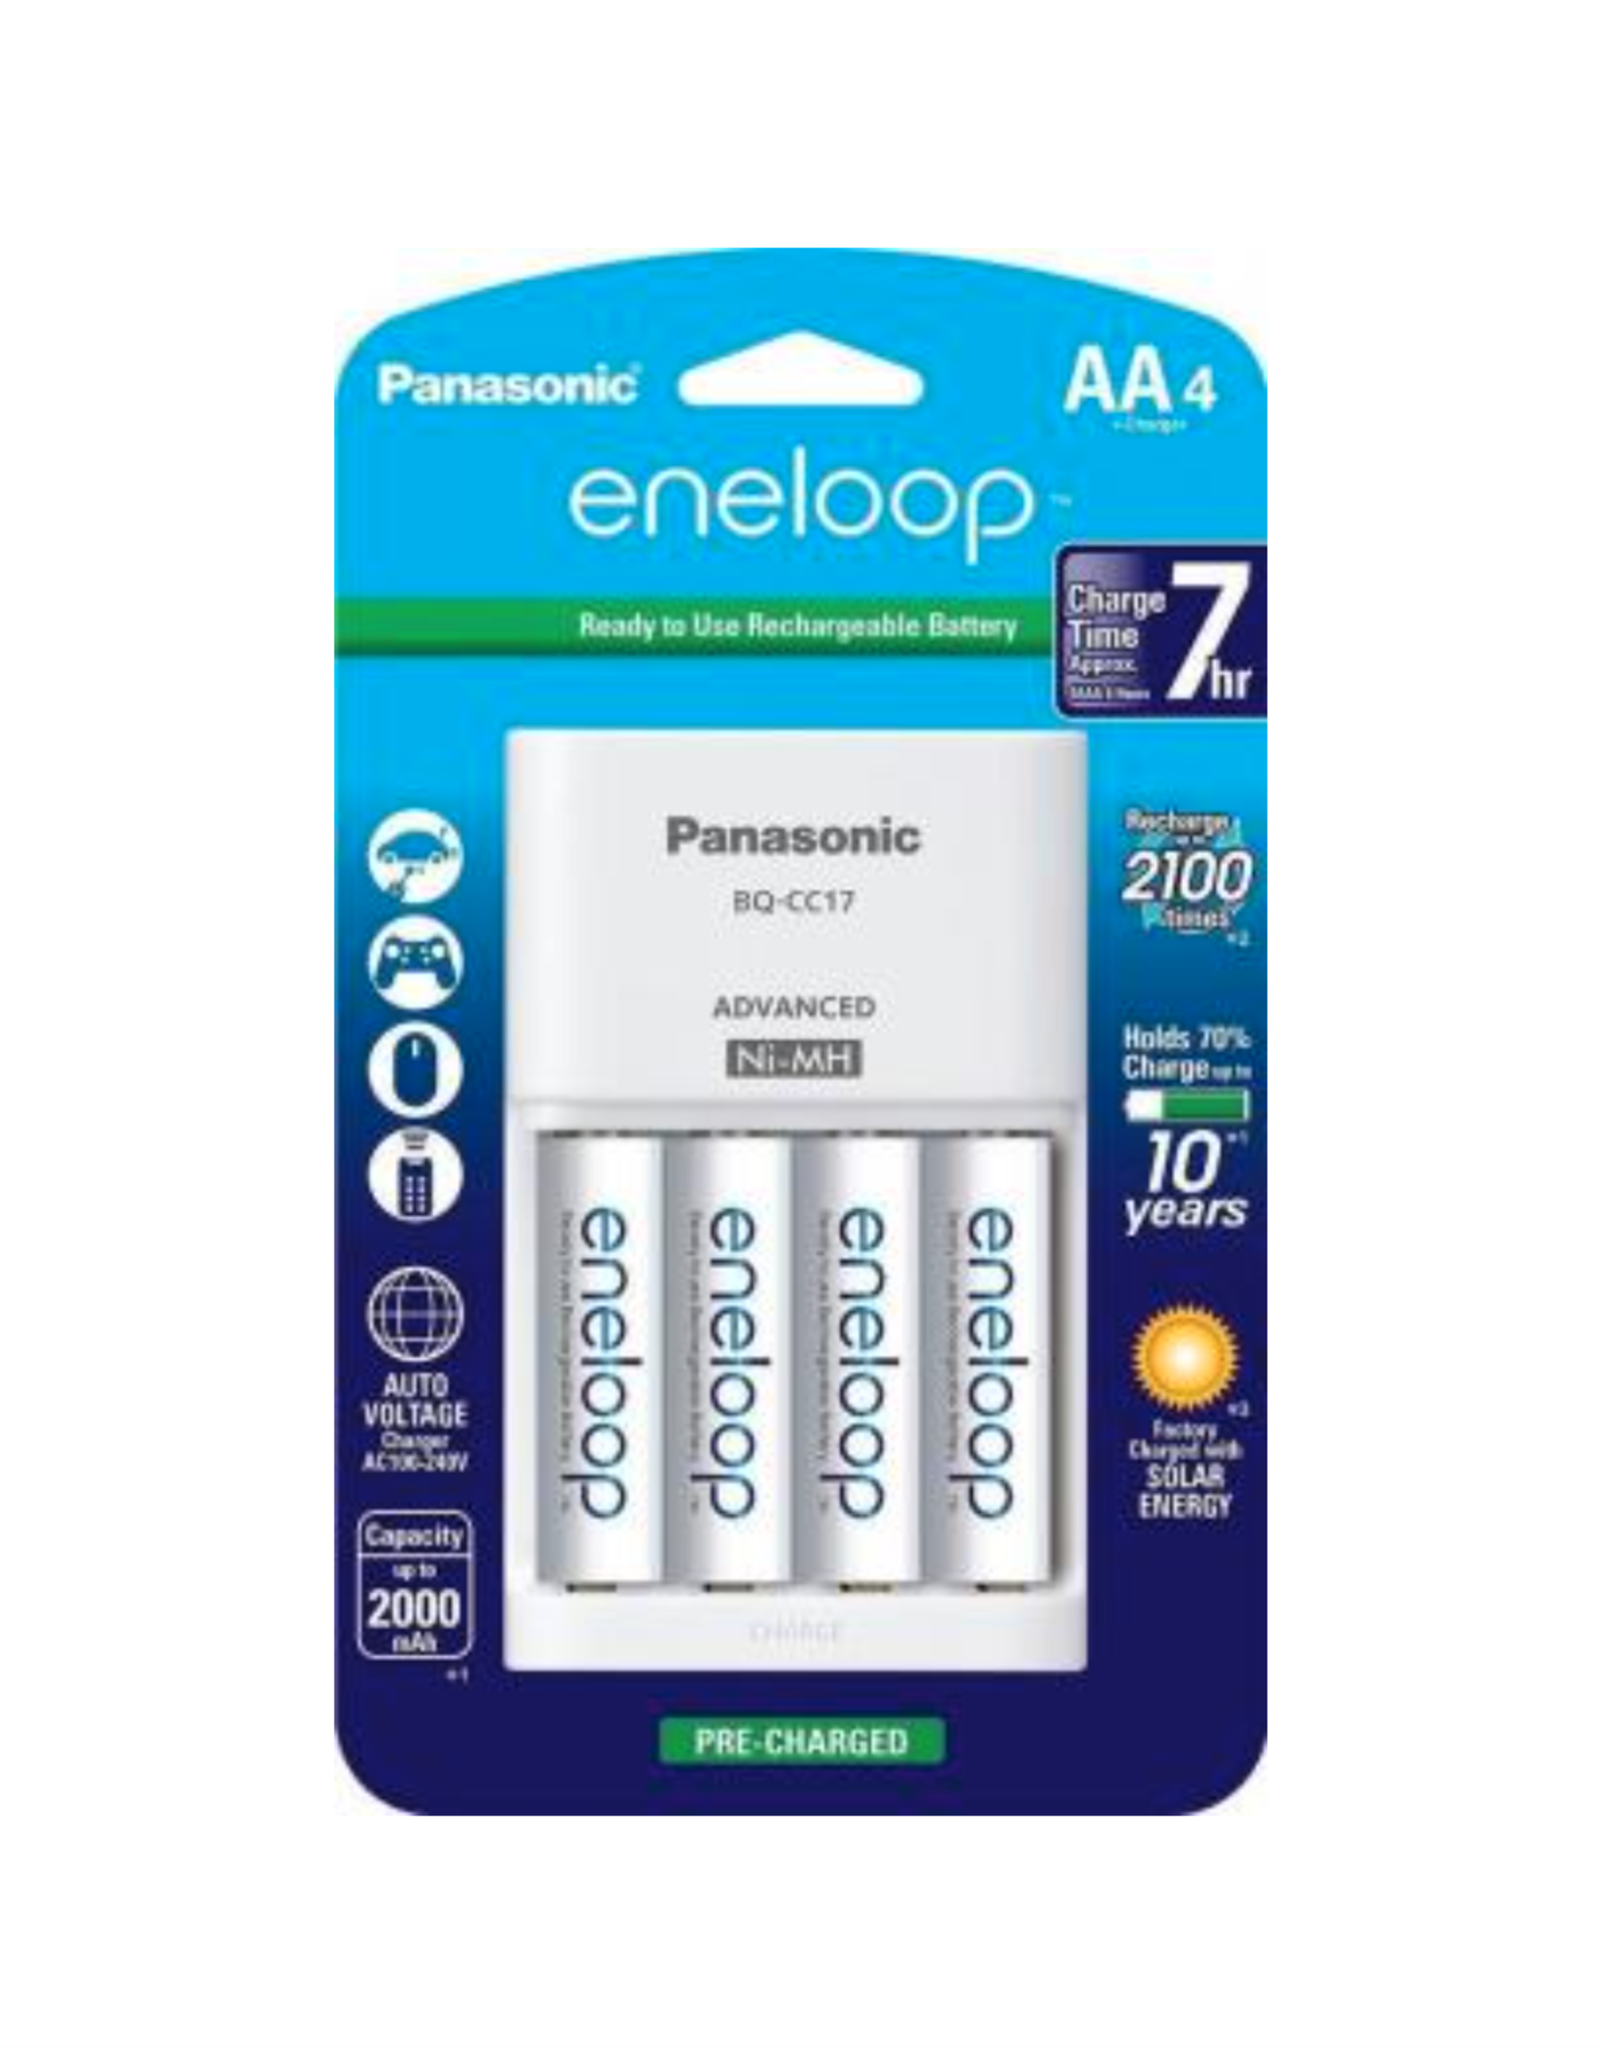 Eneloop Charger with 4AA Batteries